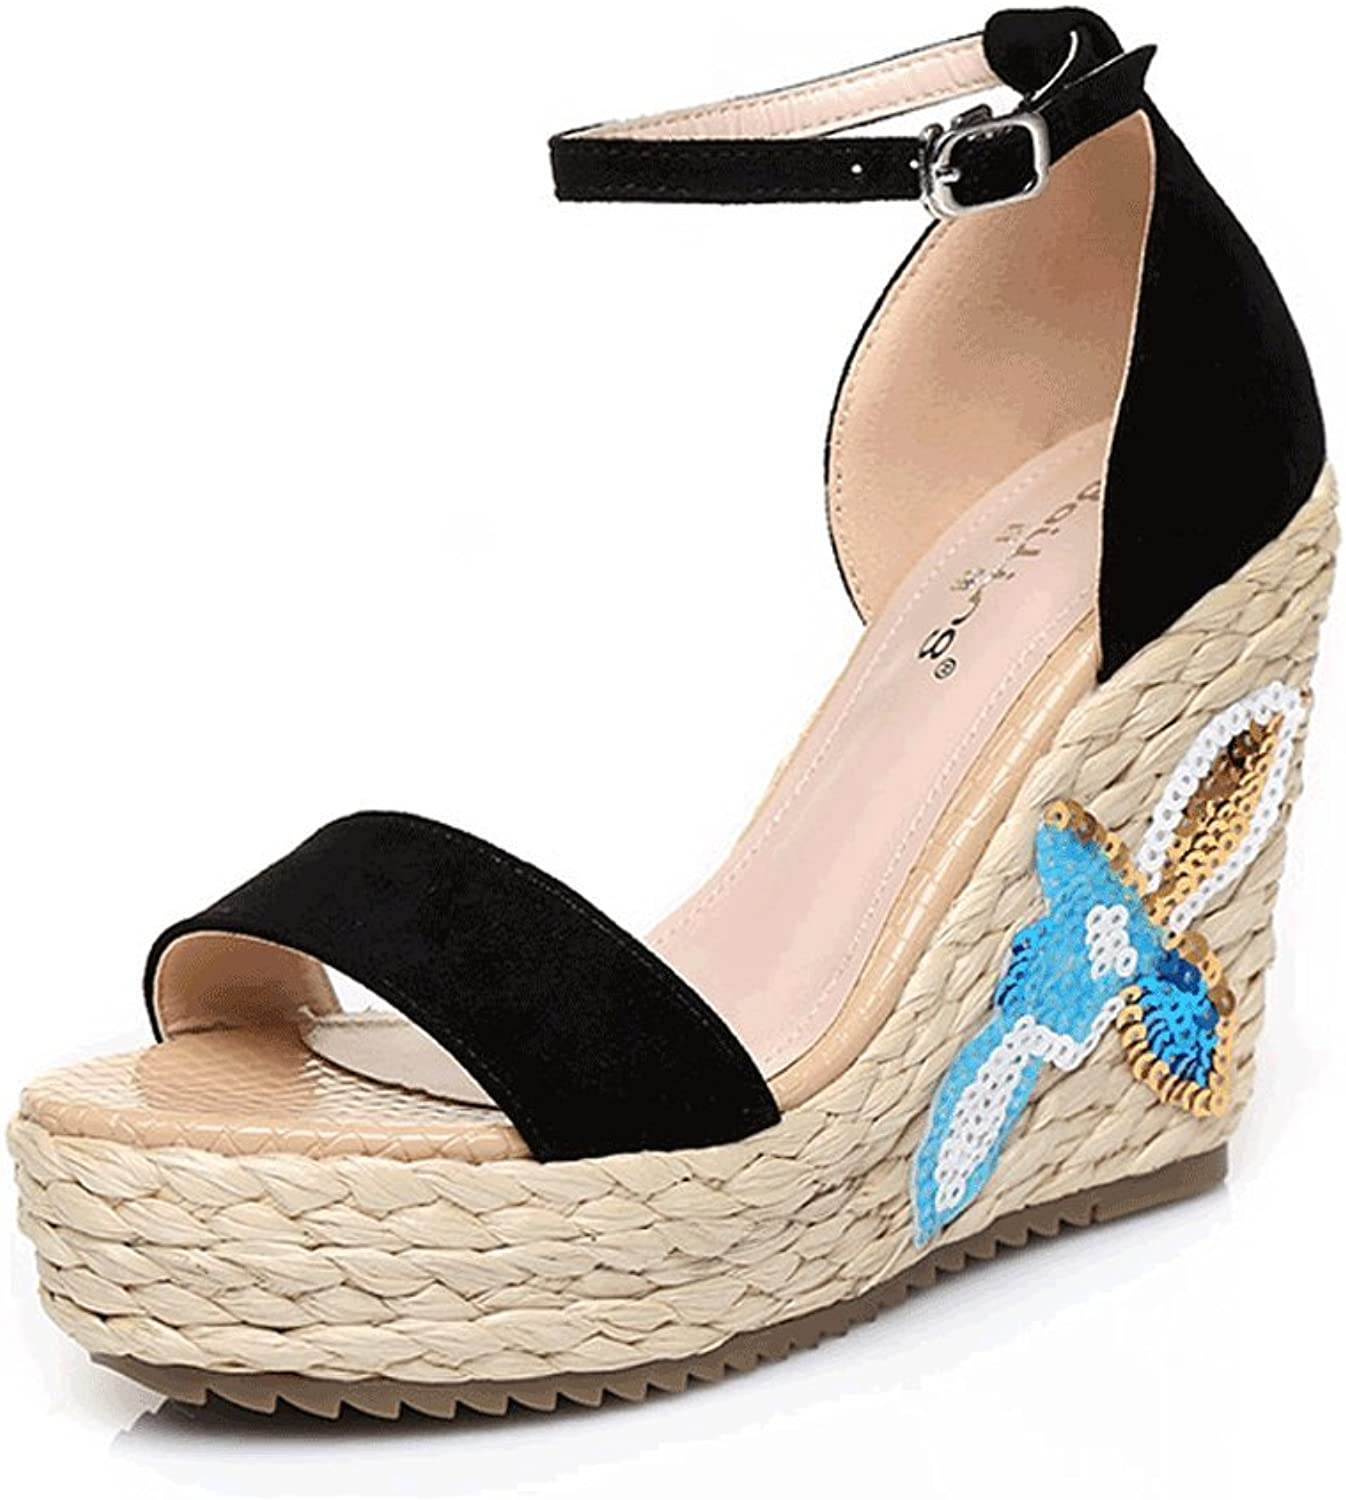 Black Wedges Sandals High Heels Bohemian Vintage Embroidered Open-Toe Woven Ankle shoes (color   Black 10.5cm, Size   38)